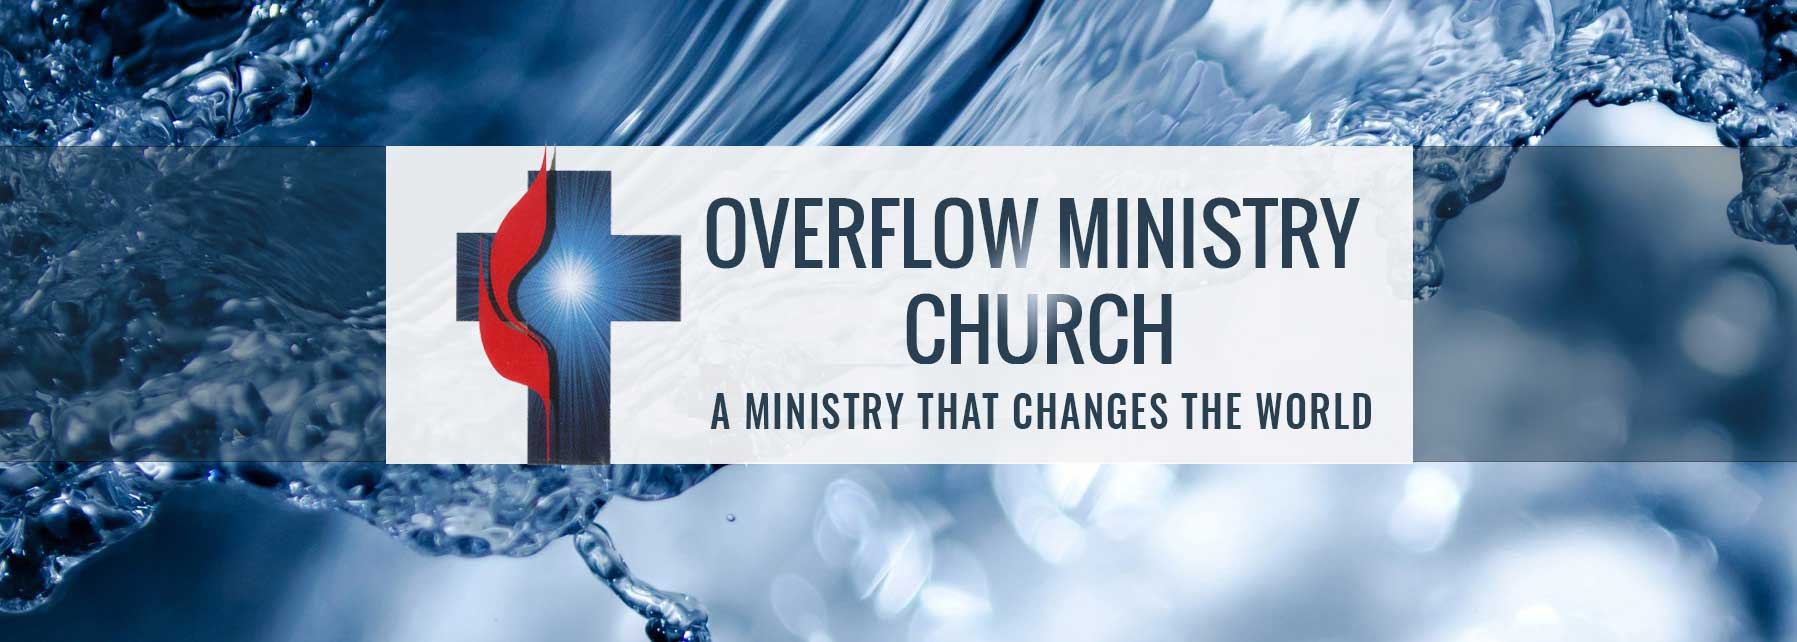 OVERFLOW MINISTRY CHURCH